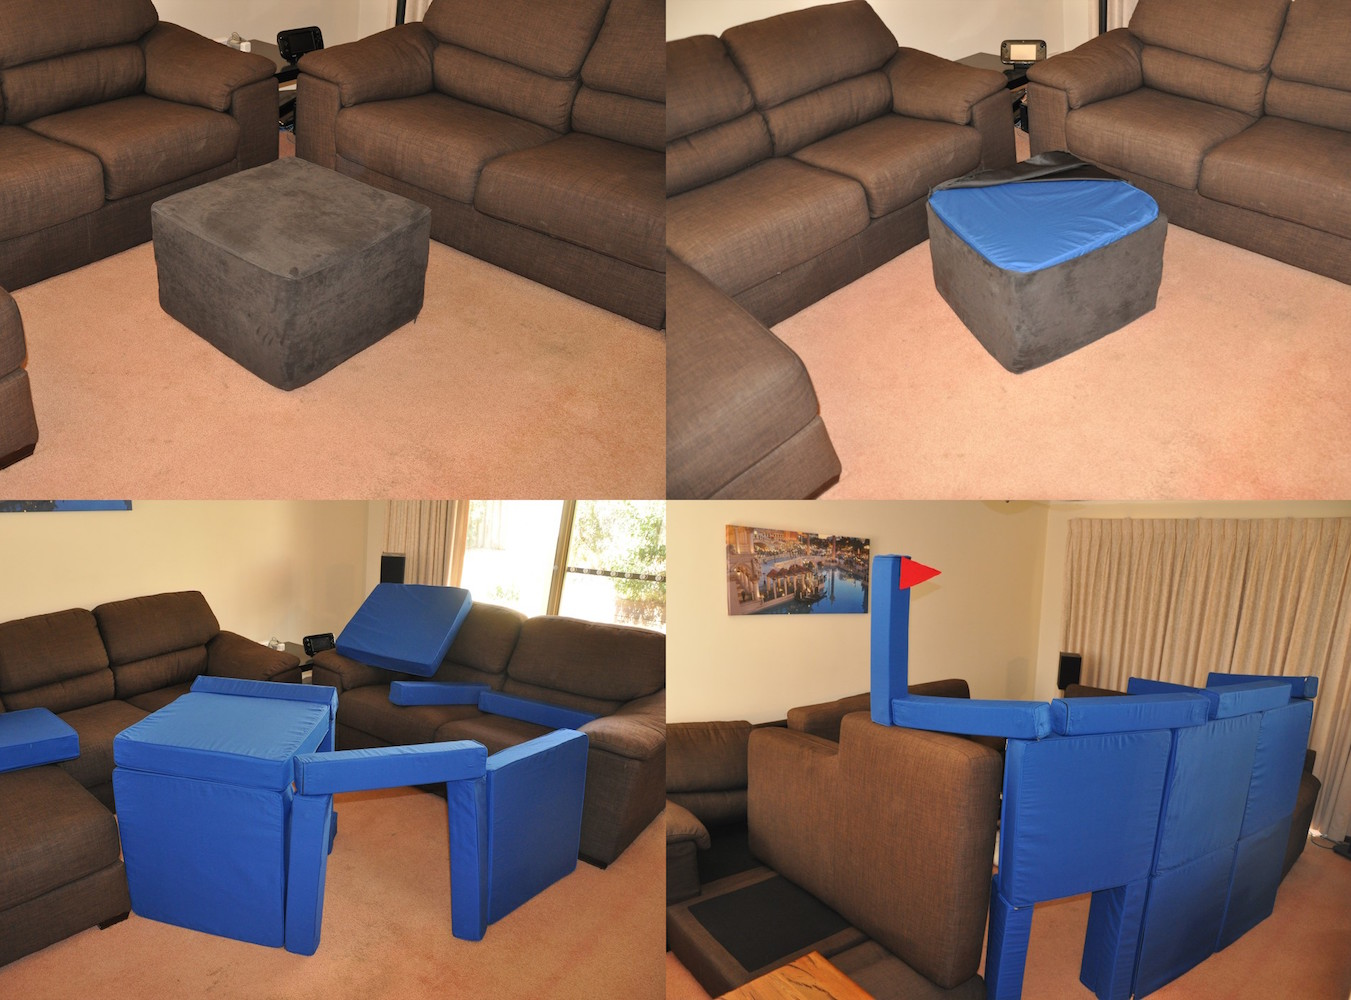 squishy-forts-pillow-fort-ottoman-12